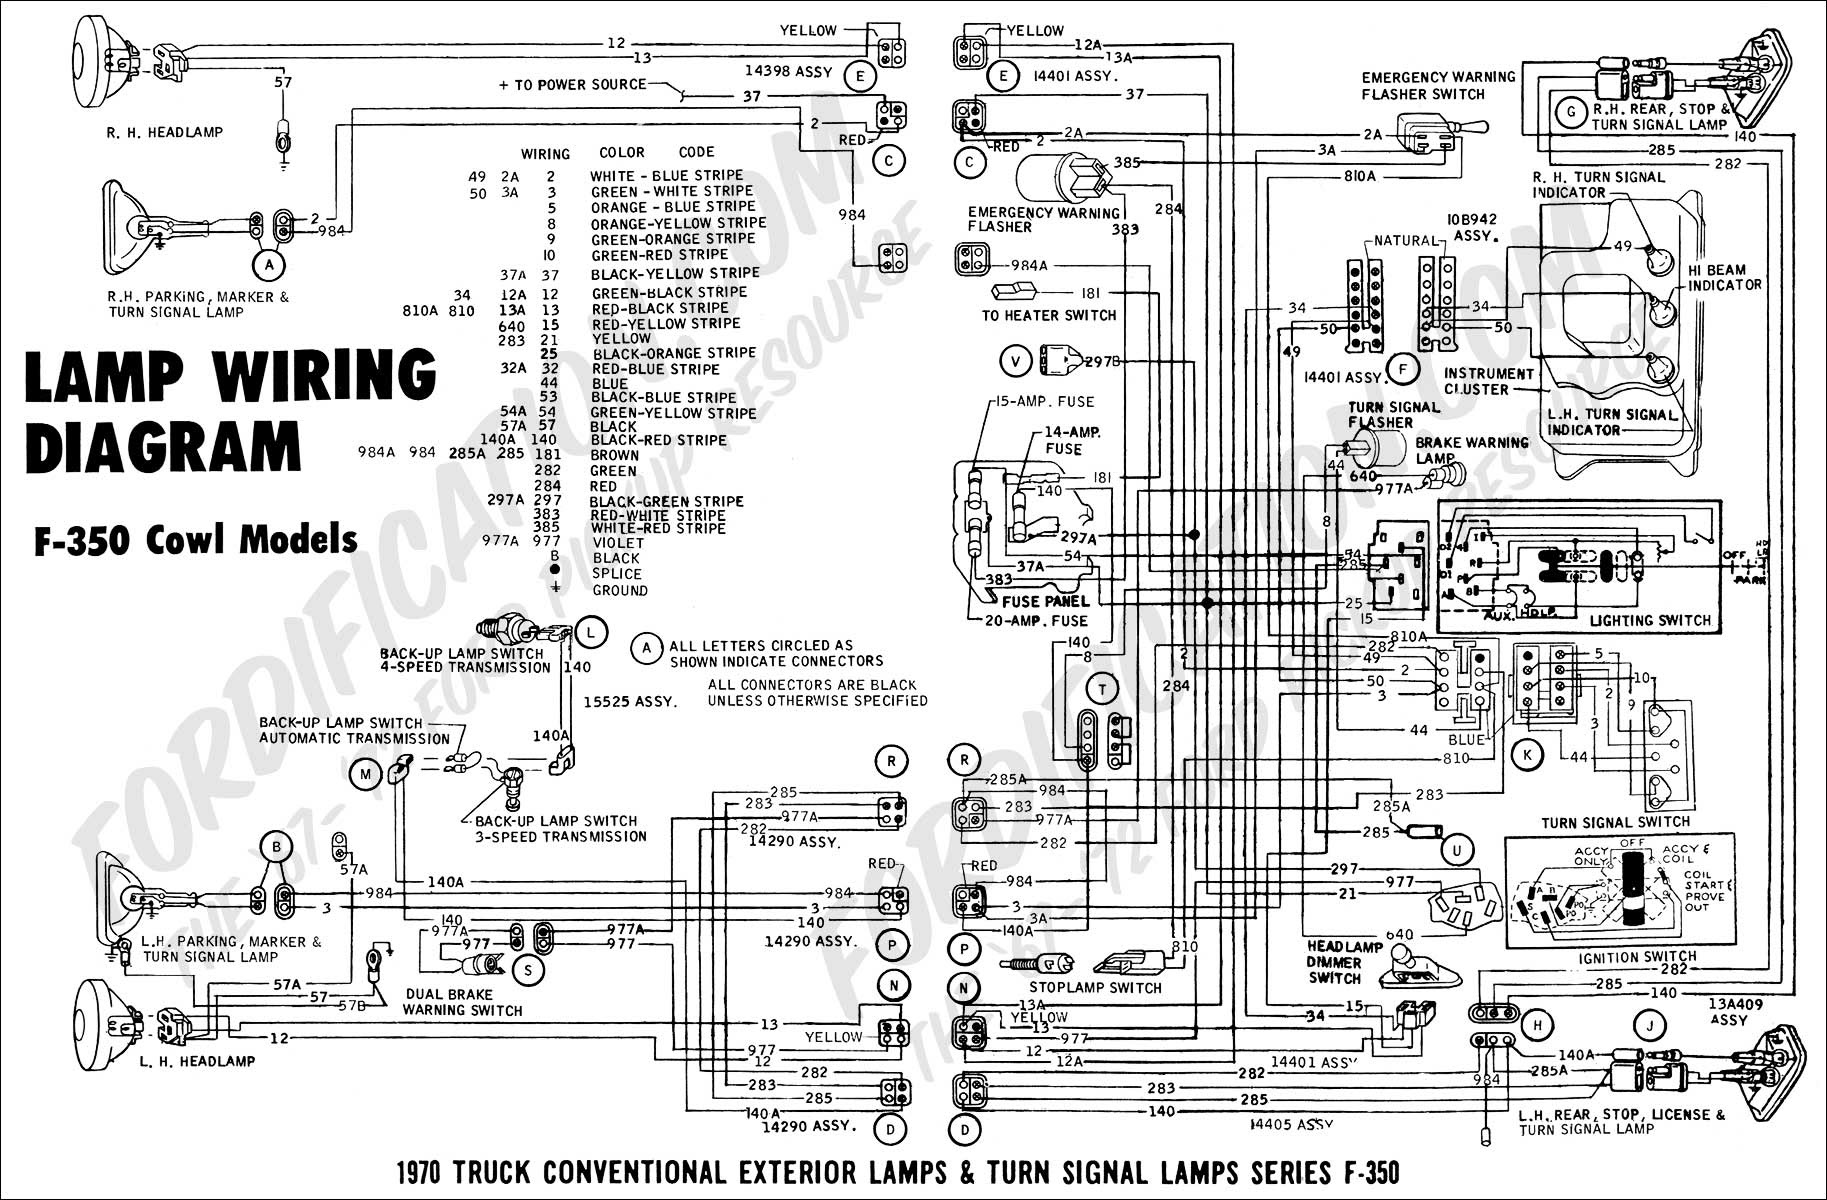 2002 Ford Truck Alternator Wiring Wiring Diagram Free Last Free Last Lionsclubviterbo It